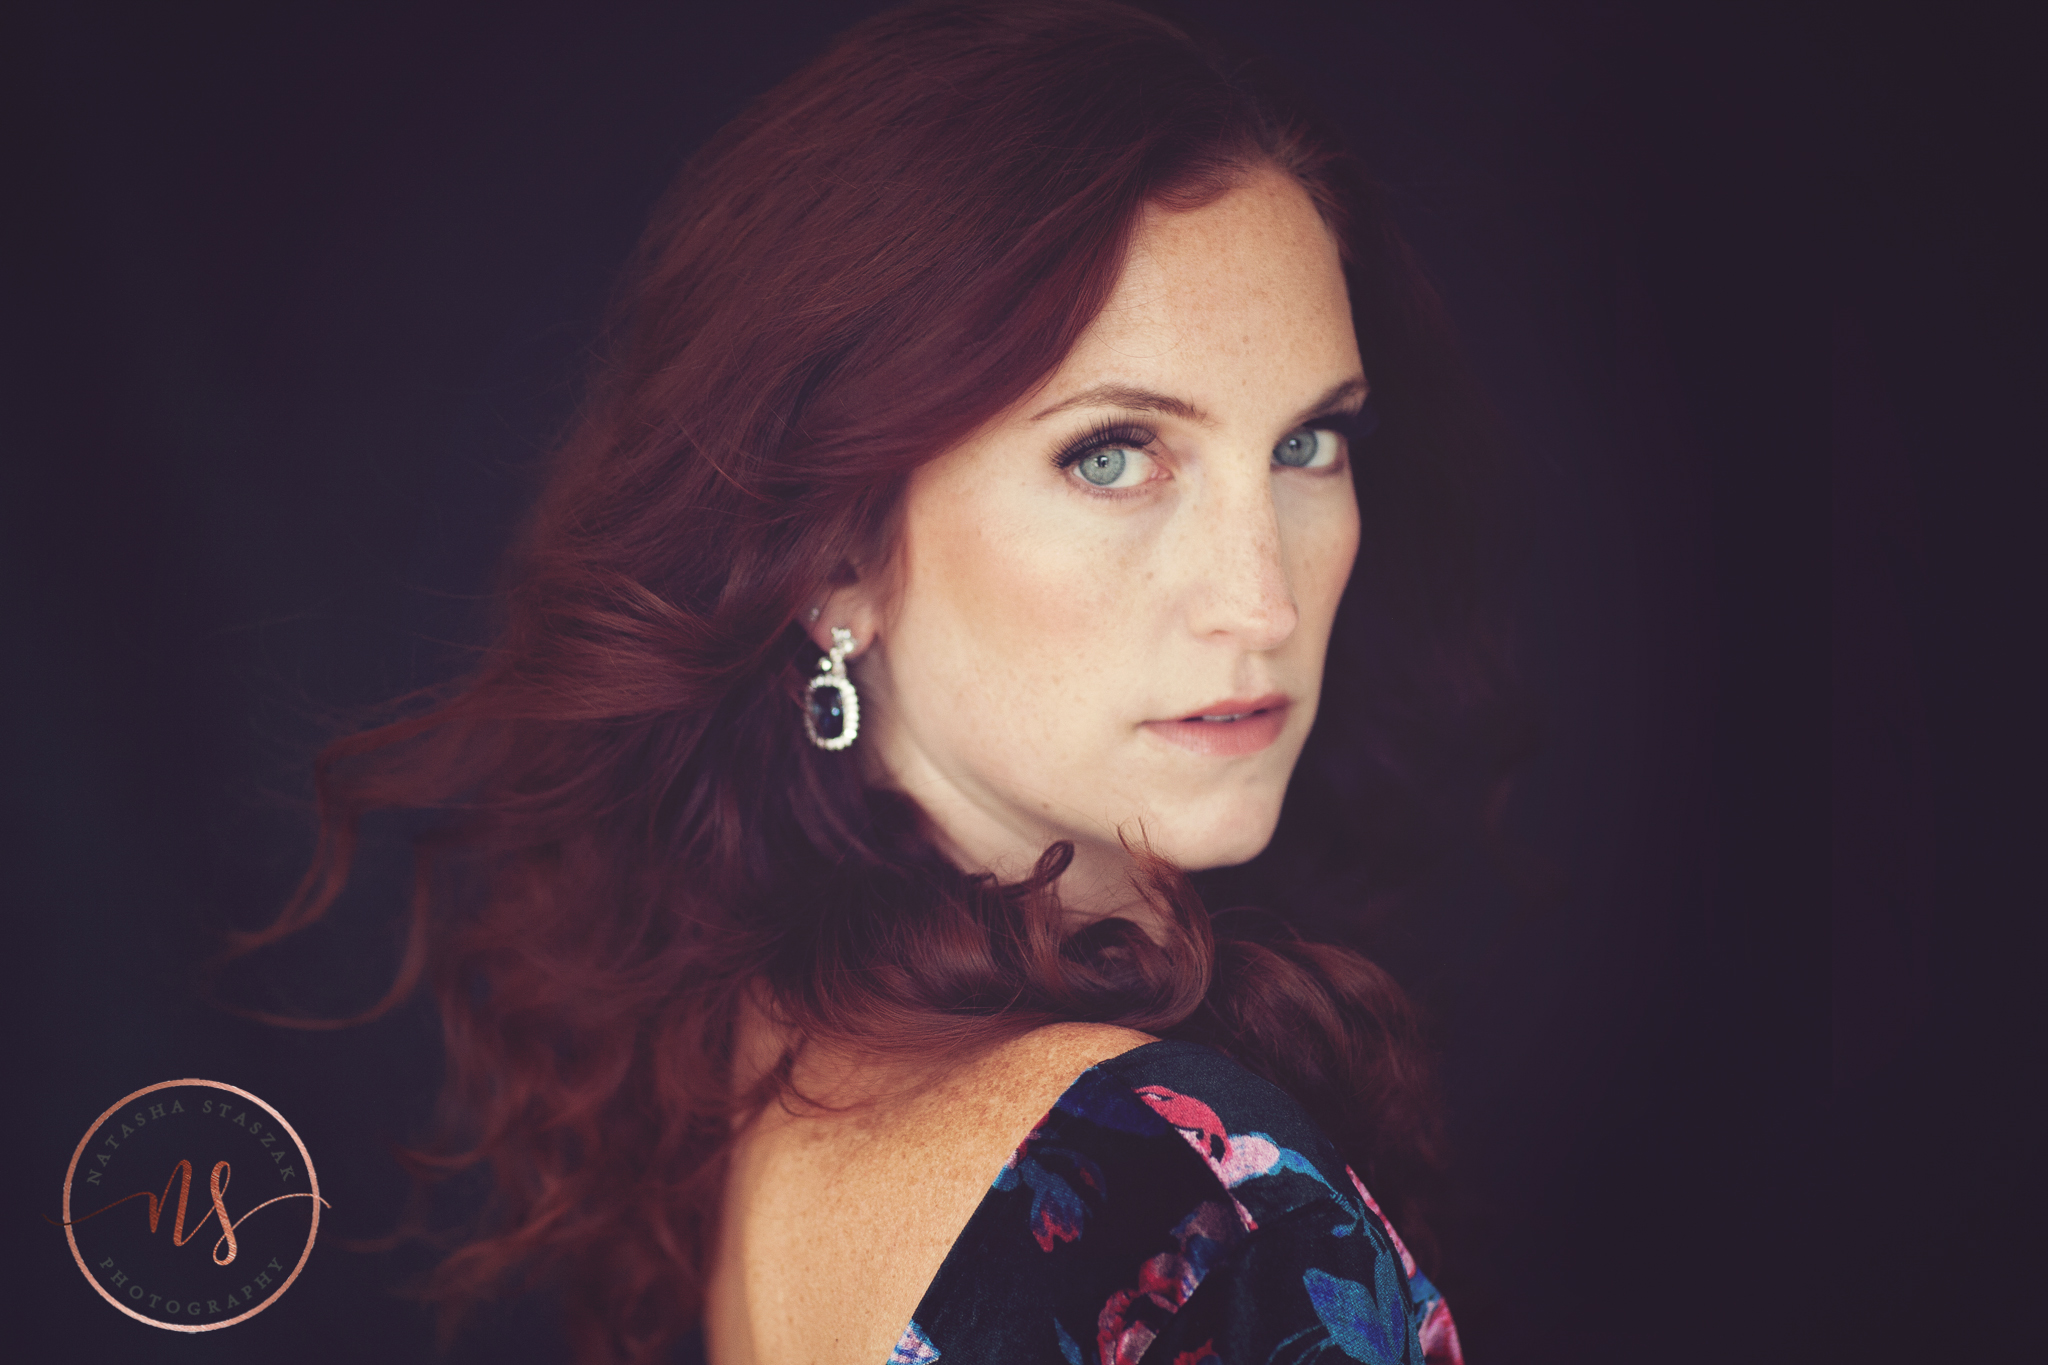 Amazing portrait close up of Cortney Chyme with red hair and blue eyes.